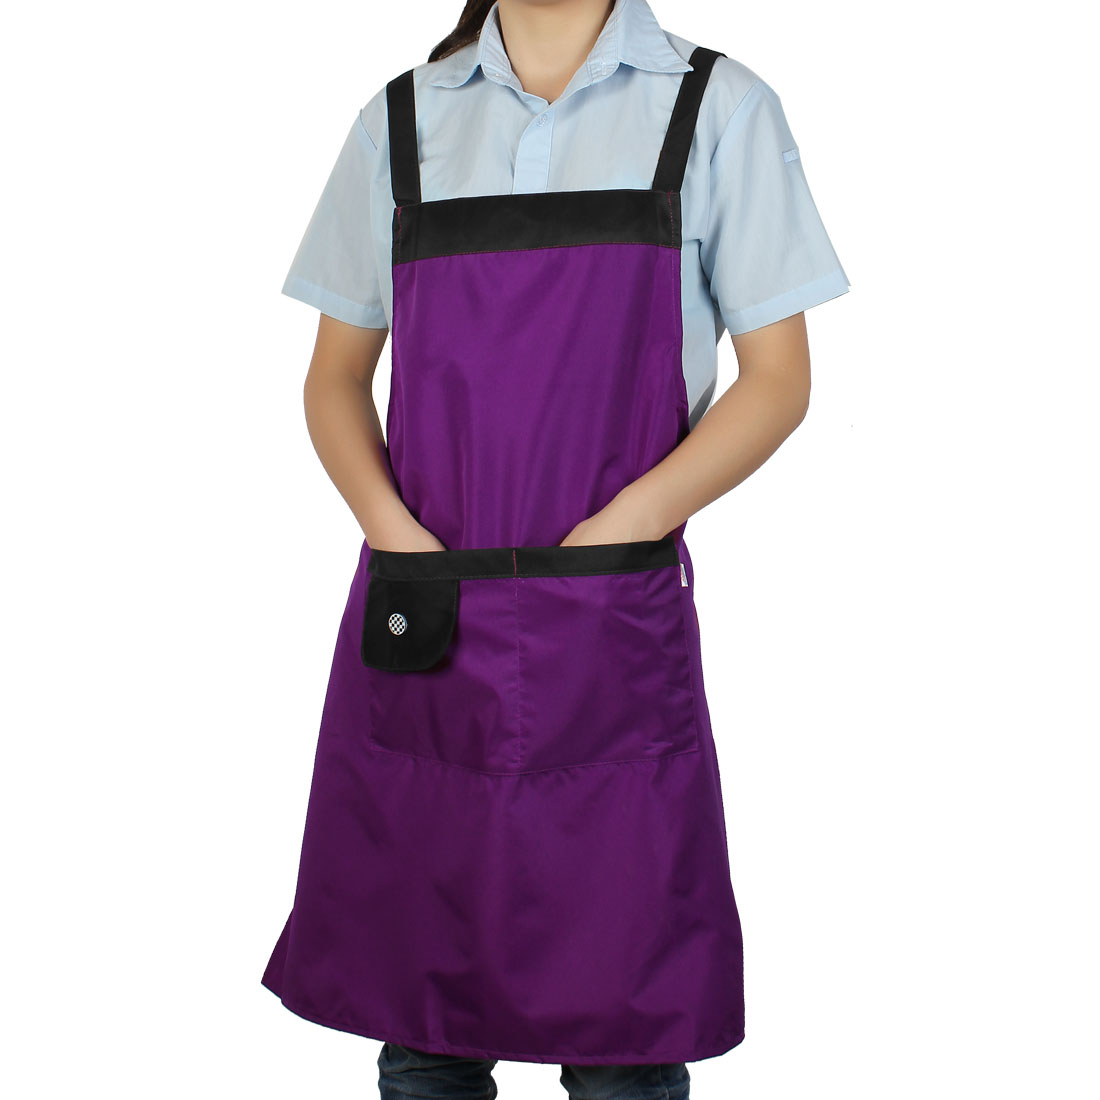 Household Kitchen Waterproof Black Purple Cooking Apron Bib Dress w Pockets